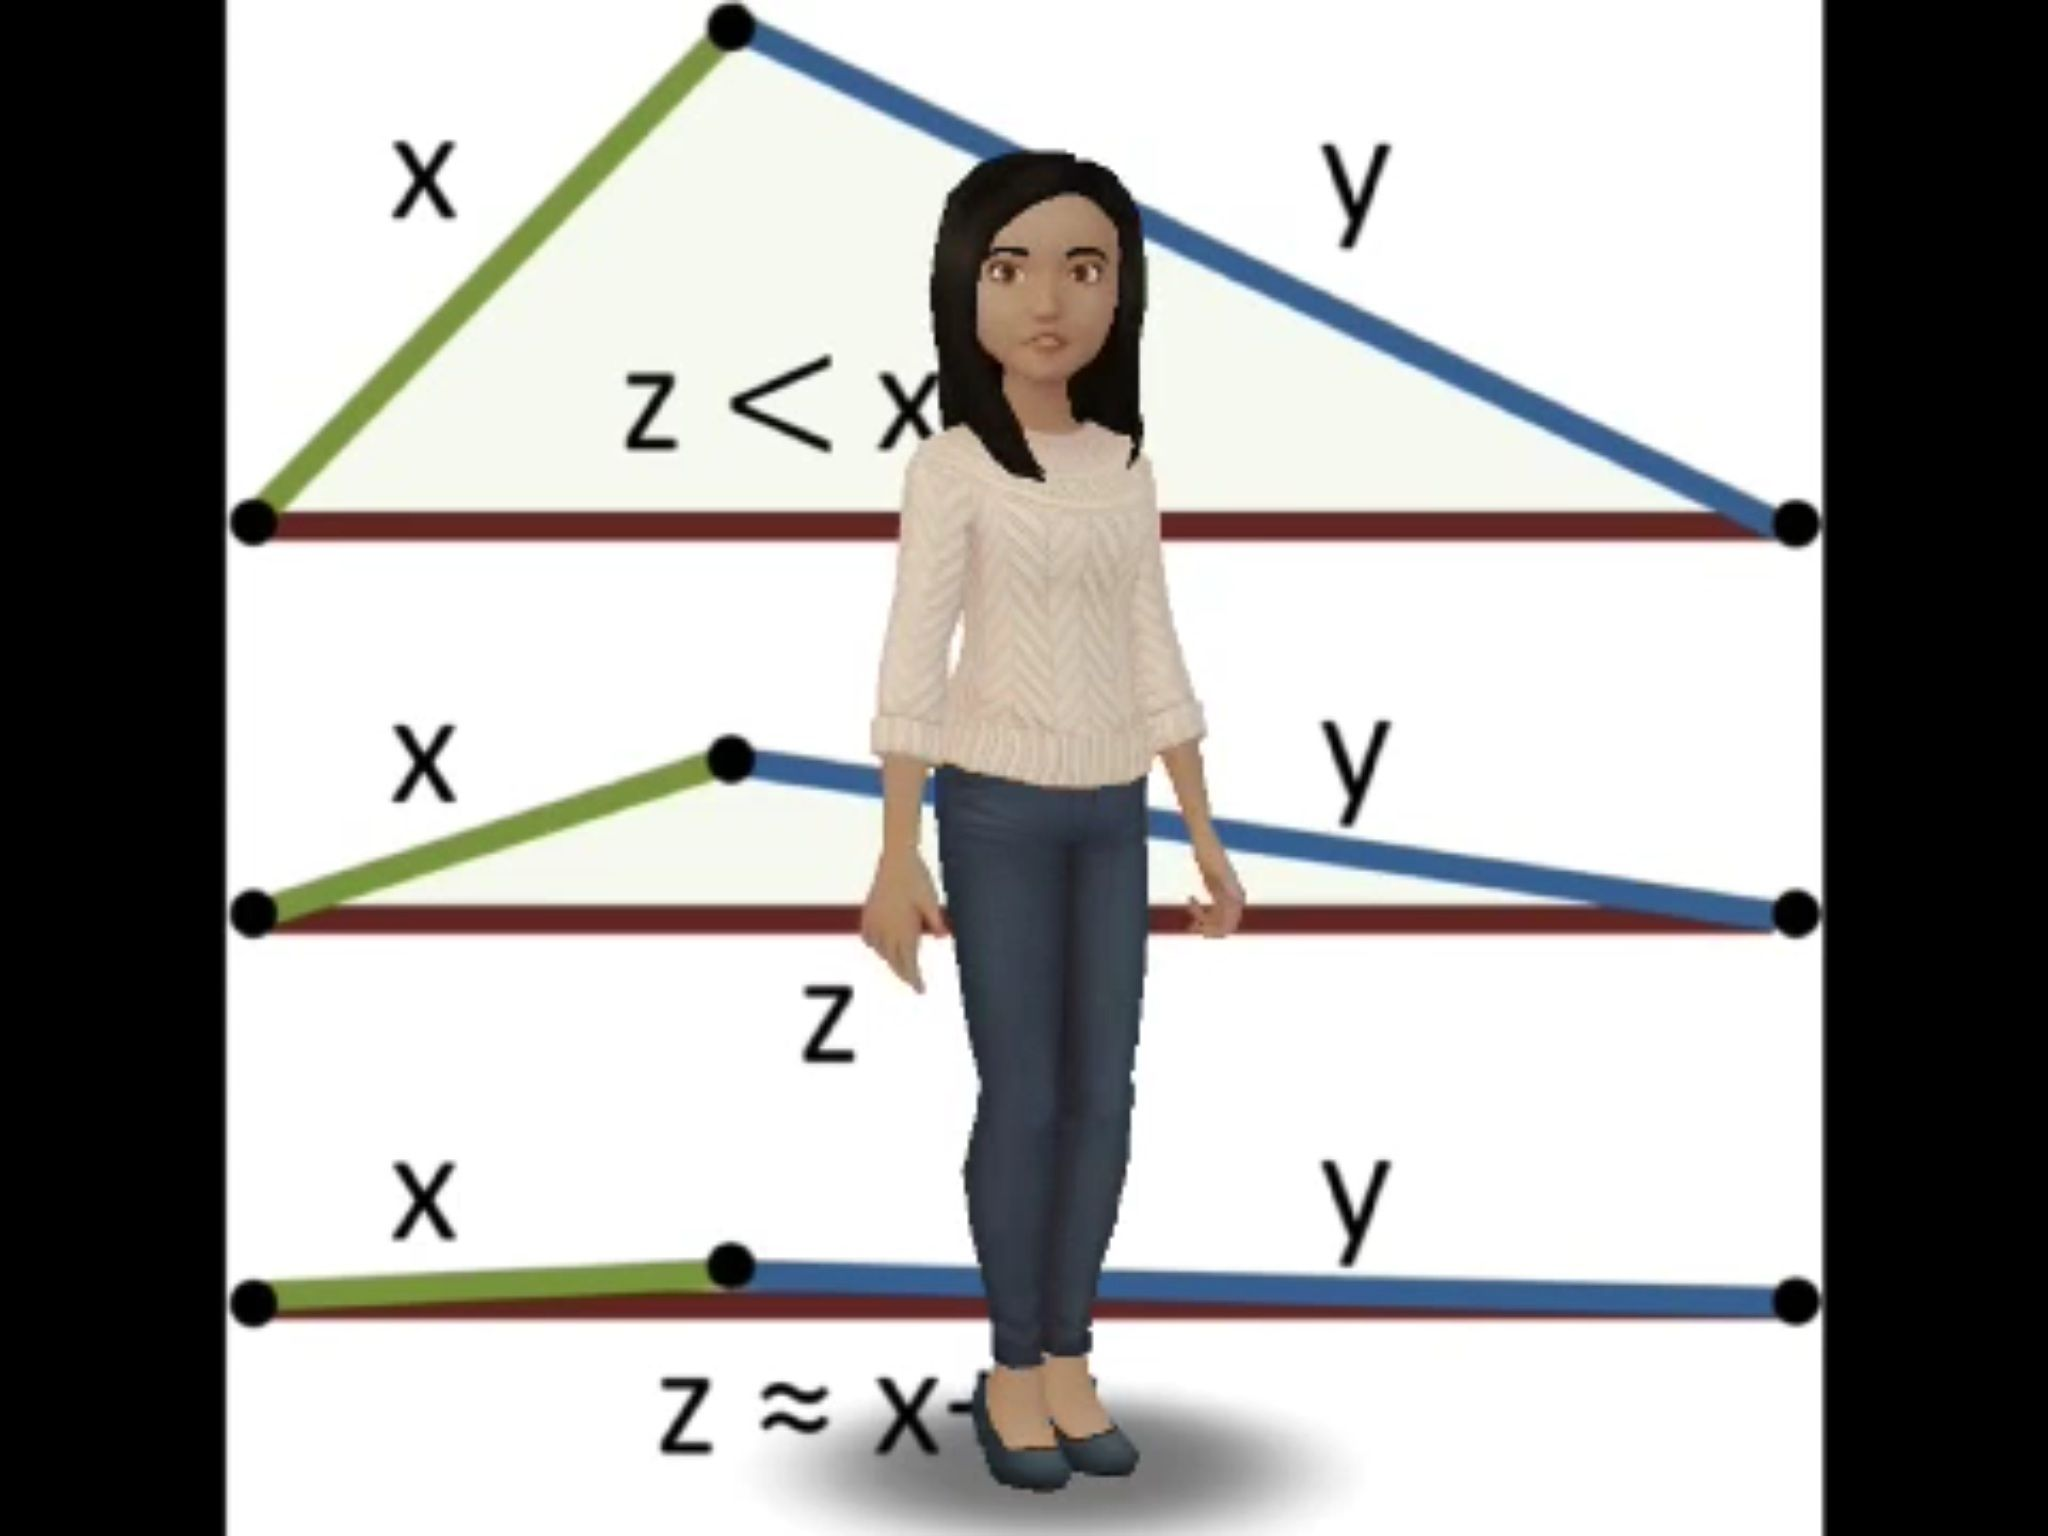 Ar Trigger To Geometry Lesson About Triangle Inequality Theorem Geometry Lessons Triangle Inequality Theorems